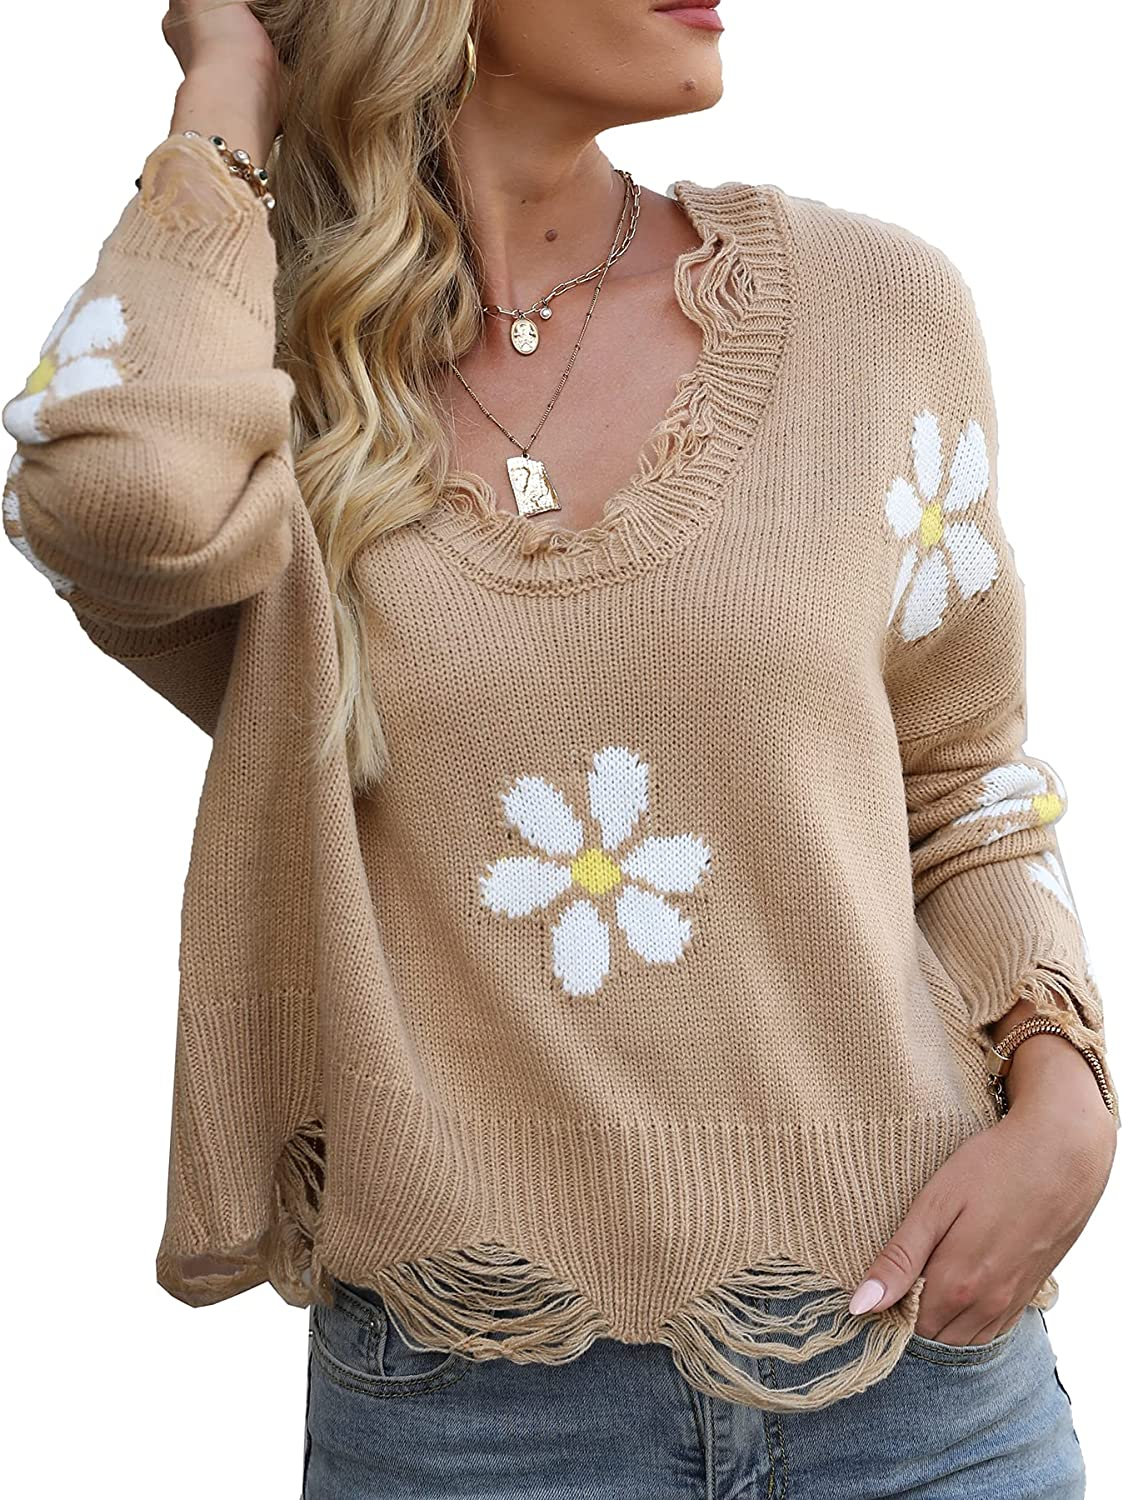 Women's Ripped Sweater Long Sleeve Knitted Daisy Emoji Pullover Crop Top Knit Jumper